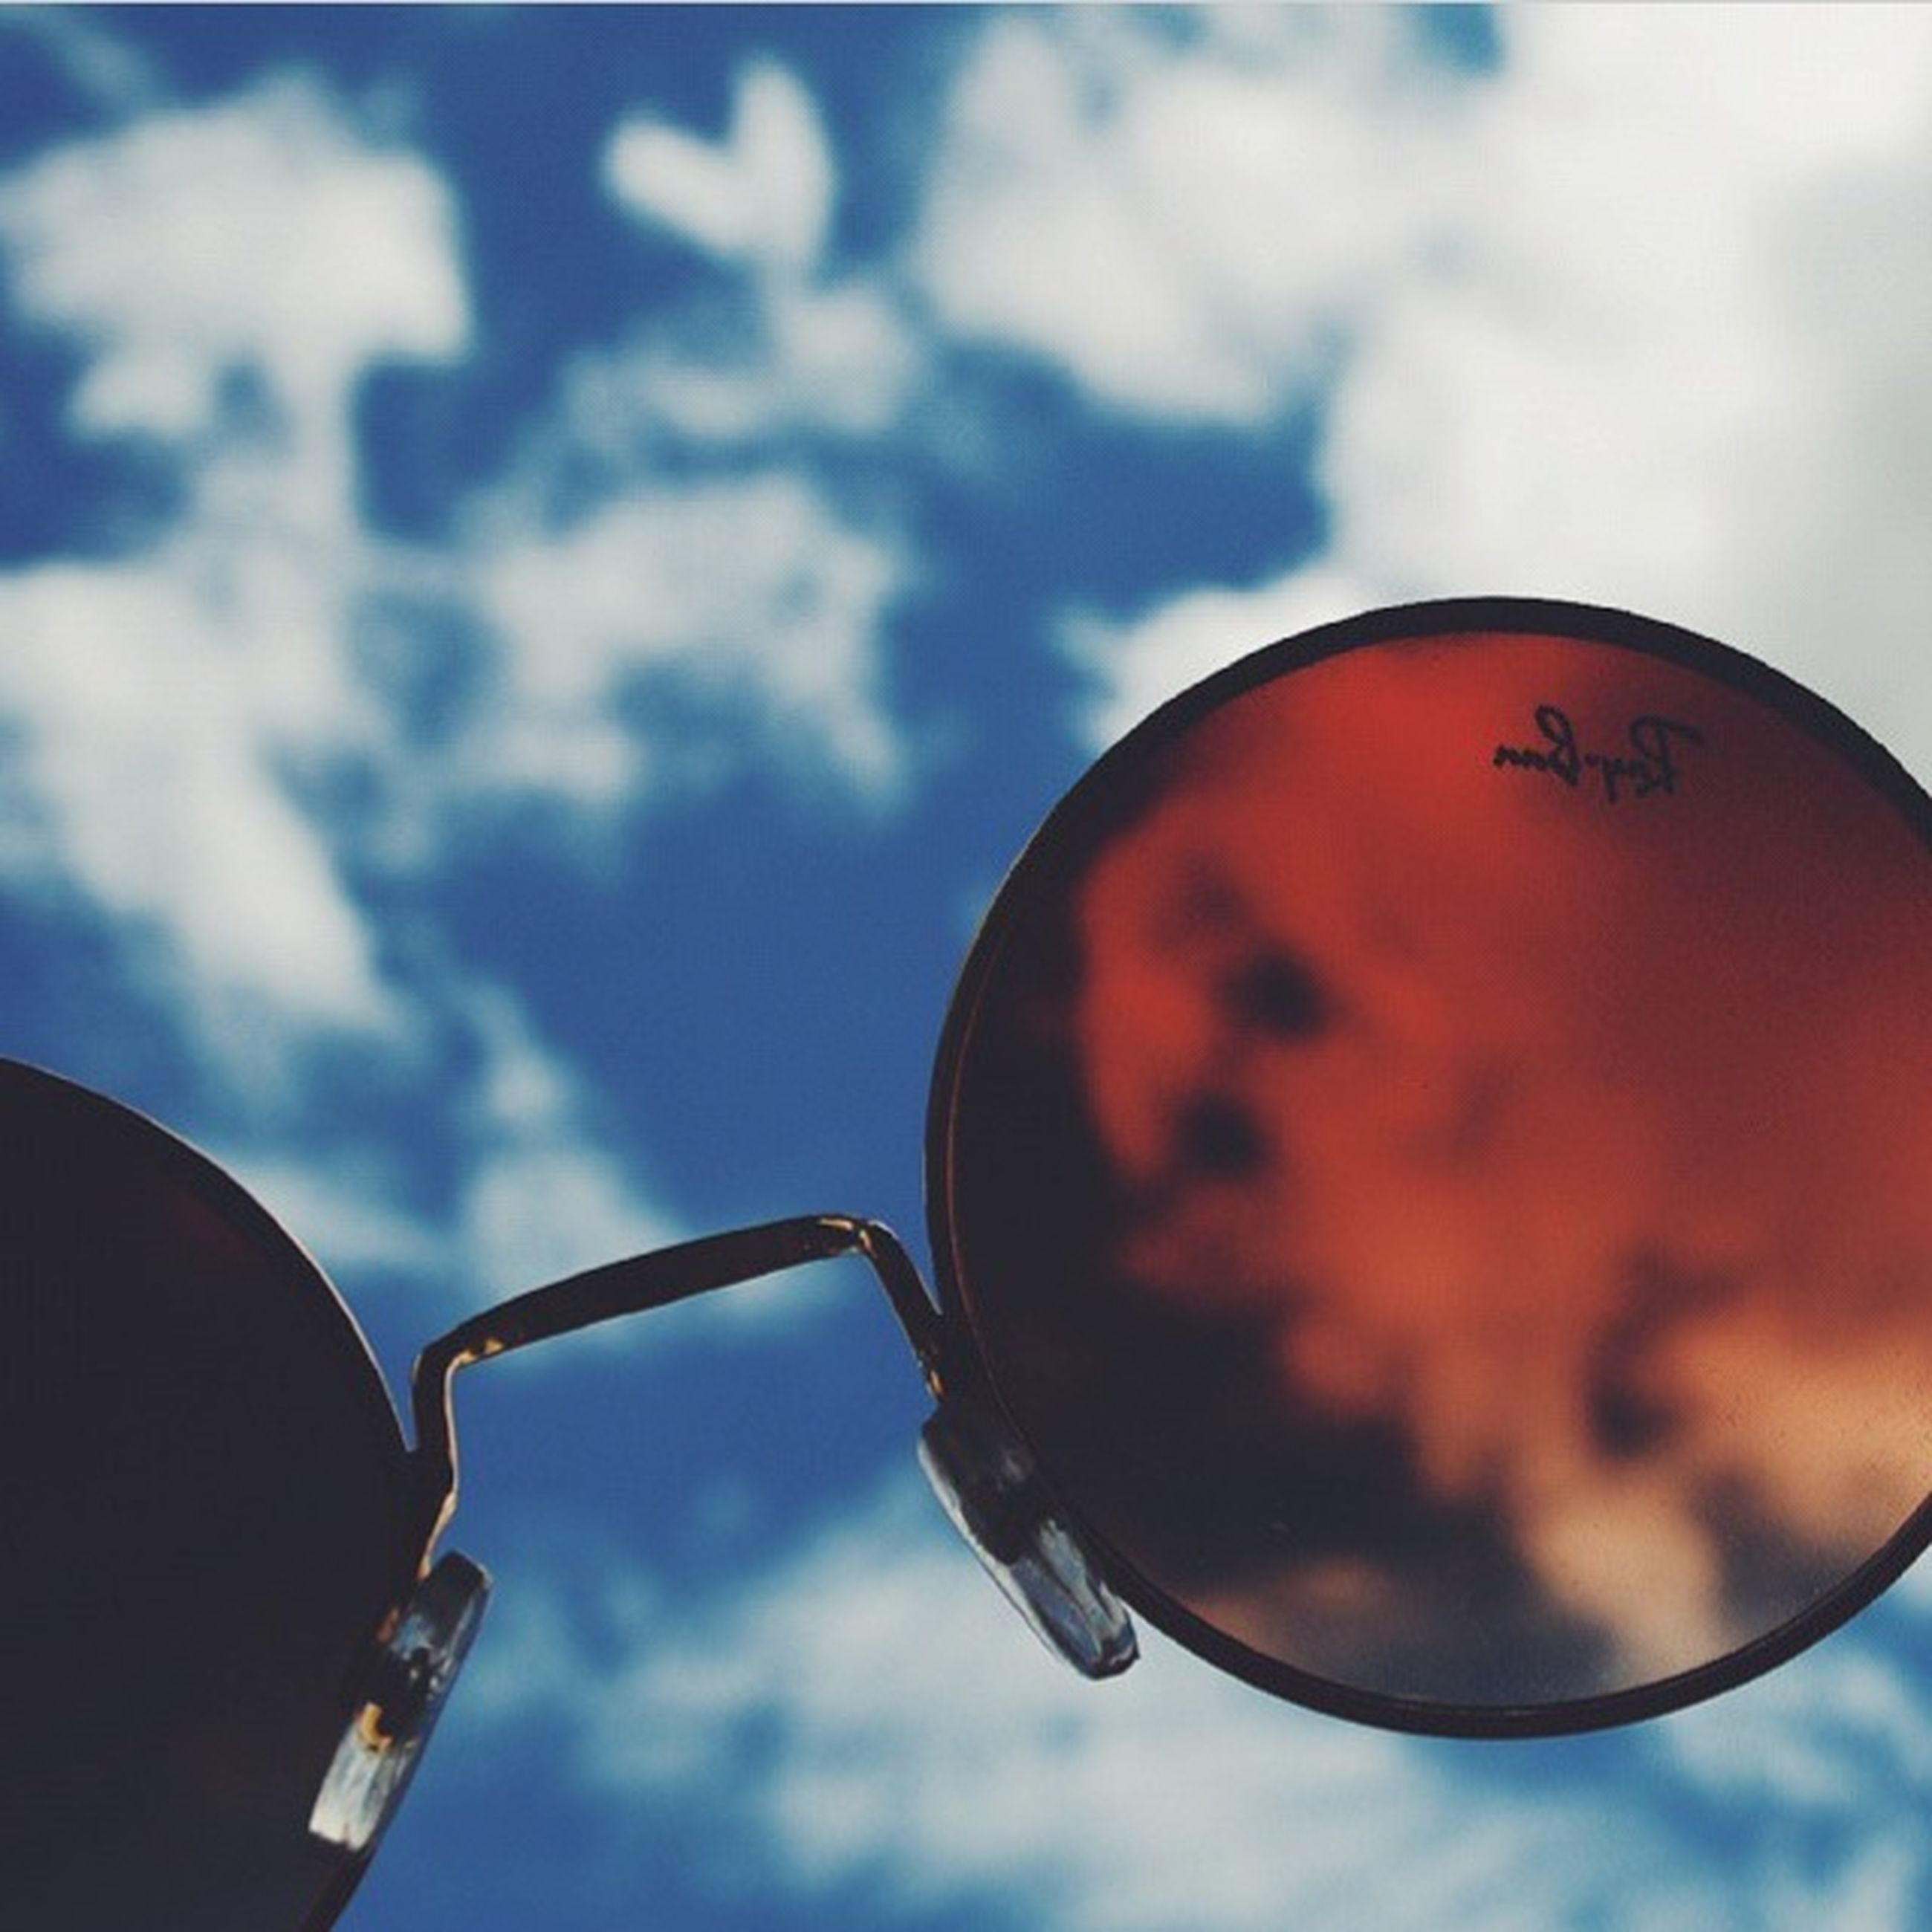 low angle view, sky, close-up, communication, text, focus on foreground, cloud - sky, metal, circle, lighting equipment, no people, outdoors, hanging, day, safety, red, cloud, western script, sphere, lantern